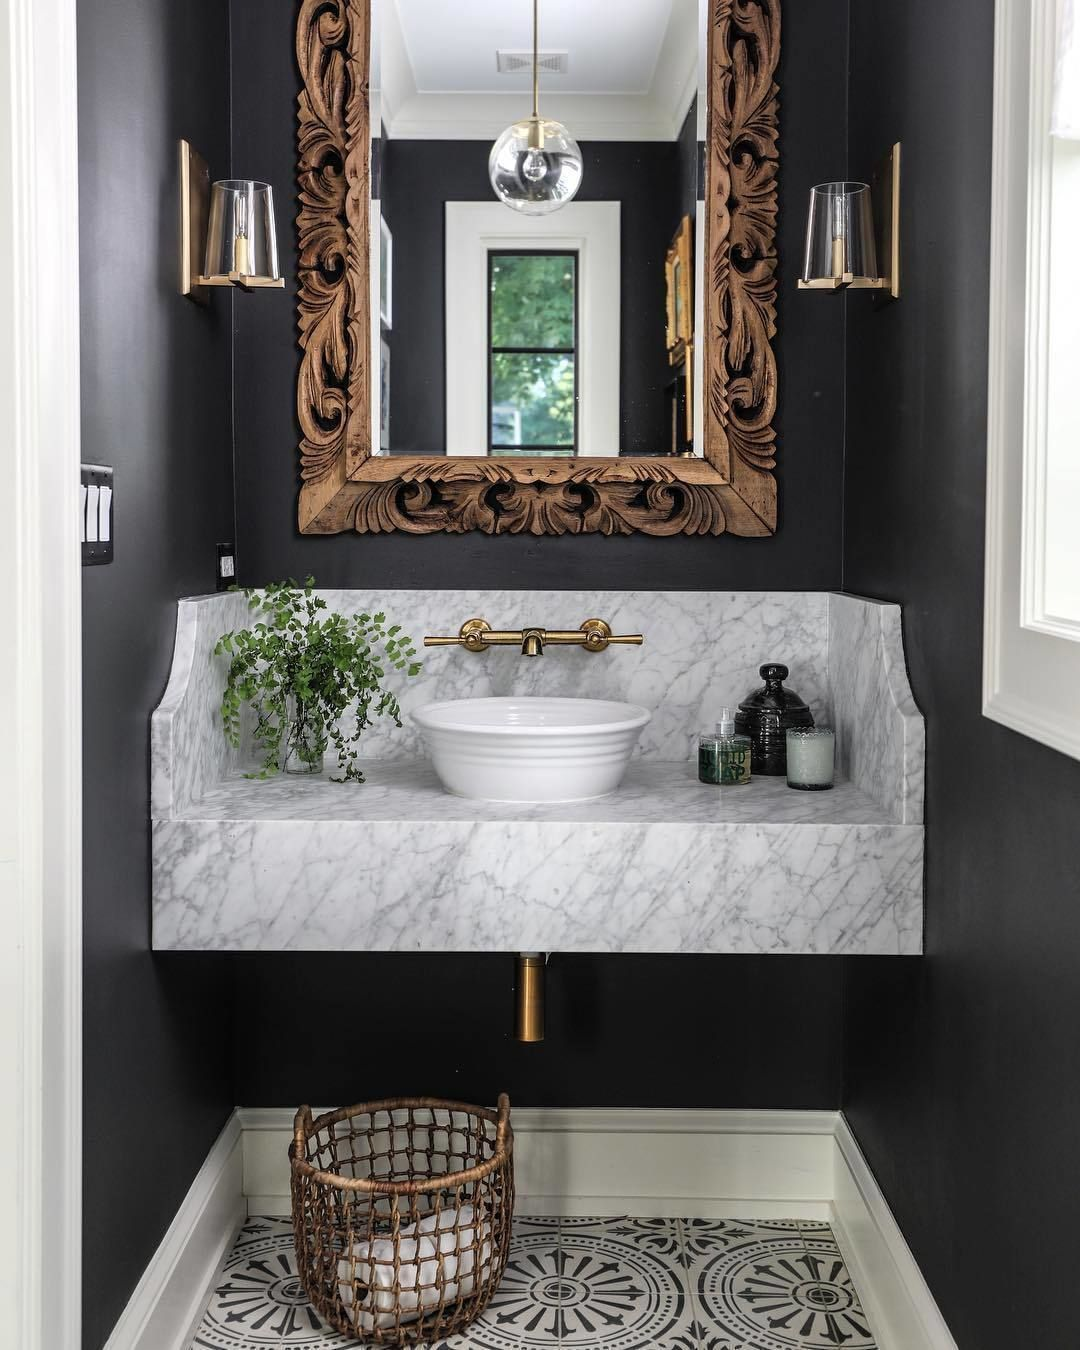 Also Get Drawers Produced The Important Things That You Utilize Routinely Such As Your Tooth B In 2020 White Bathroom Interior Bathroom Styling Bathroom Renovation Diy